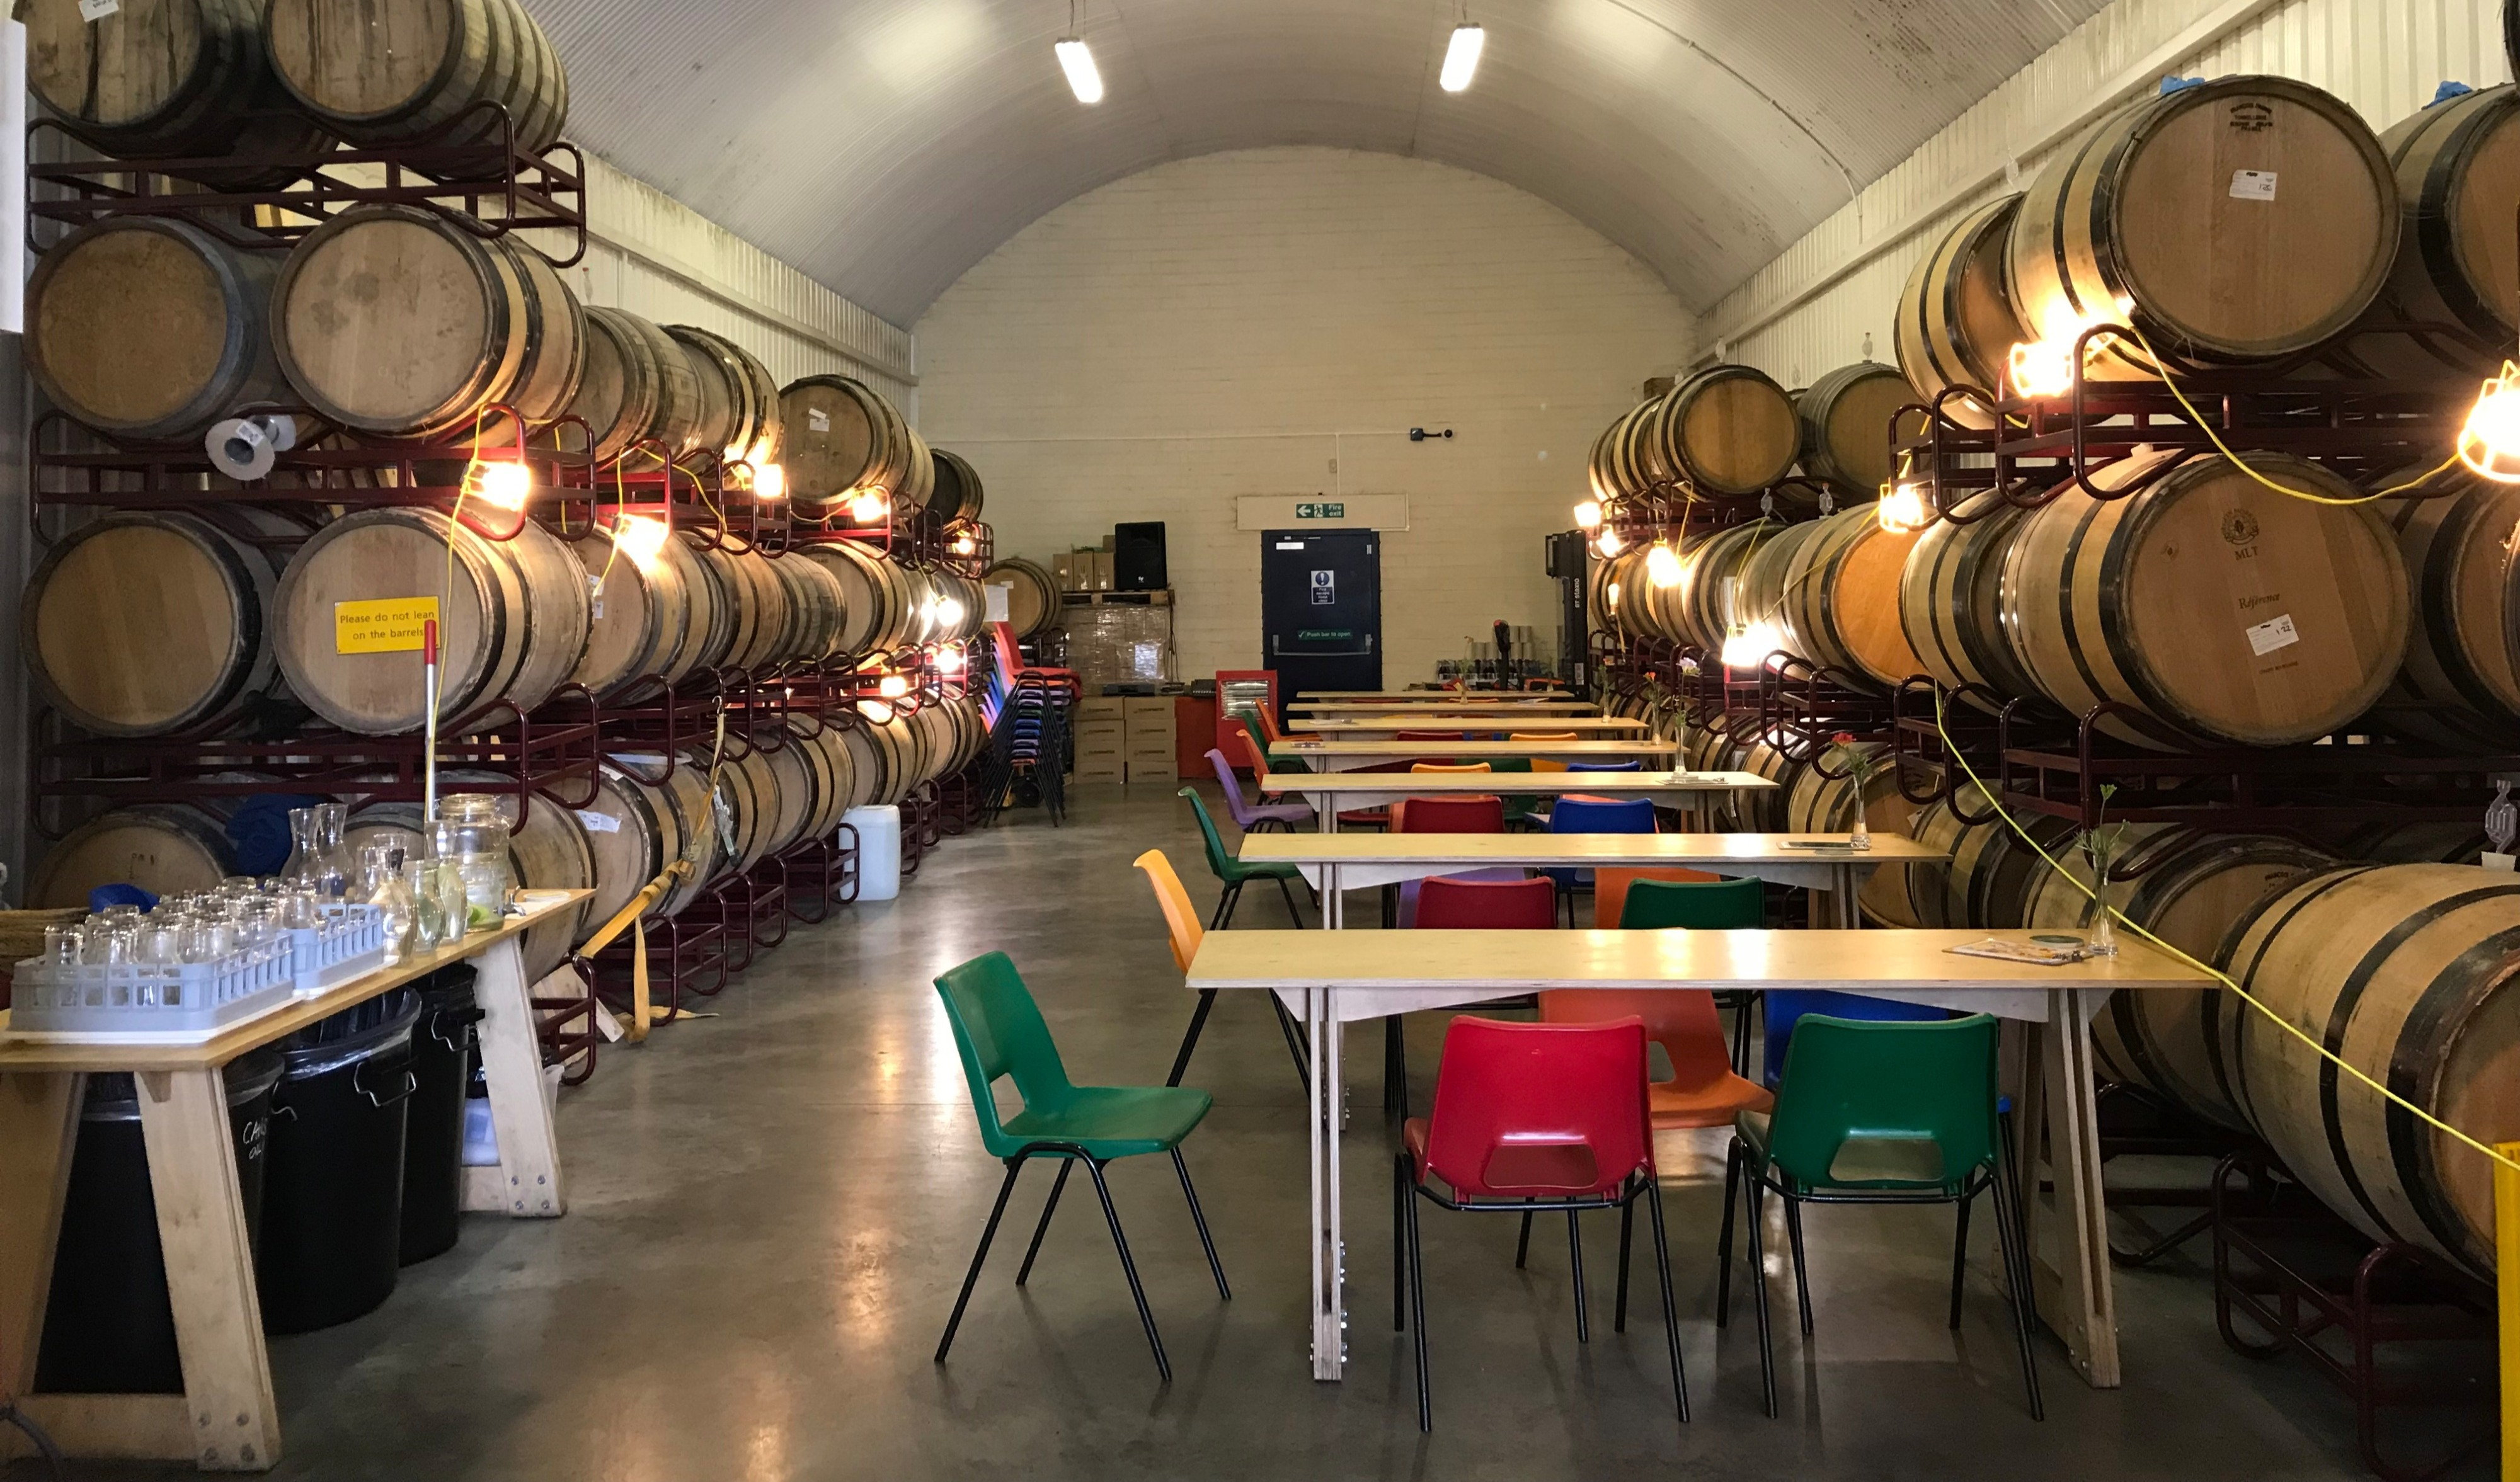 Cloudwater Barrel Store Tap room in Manchester